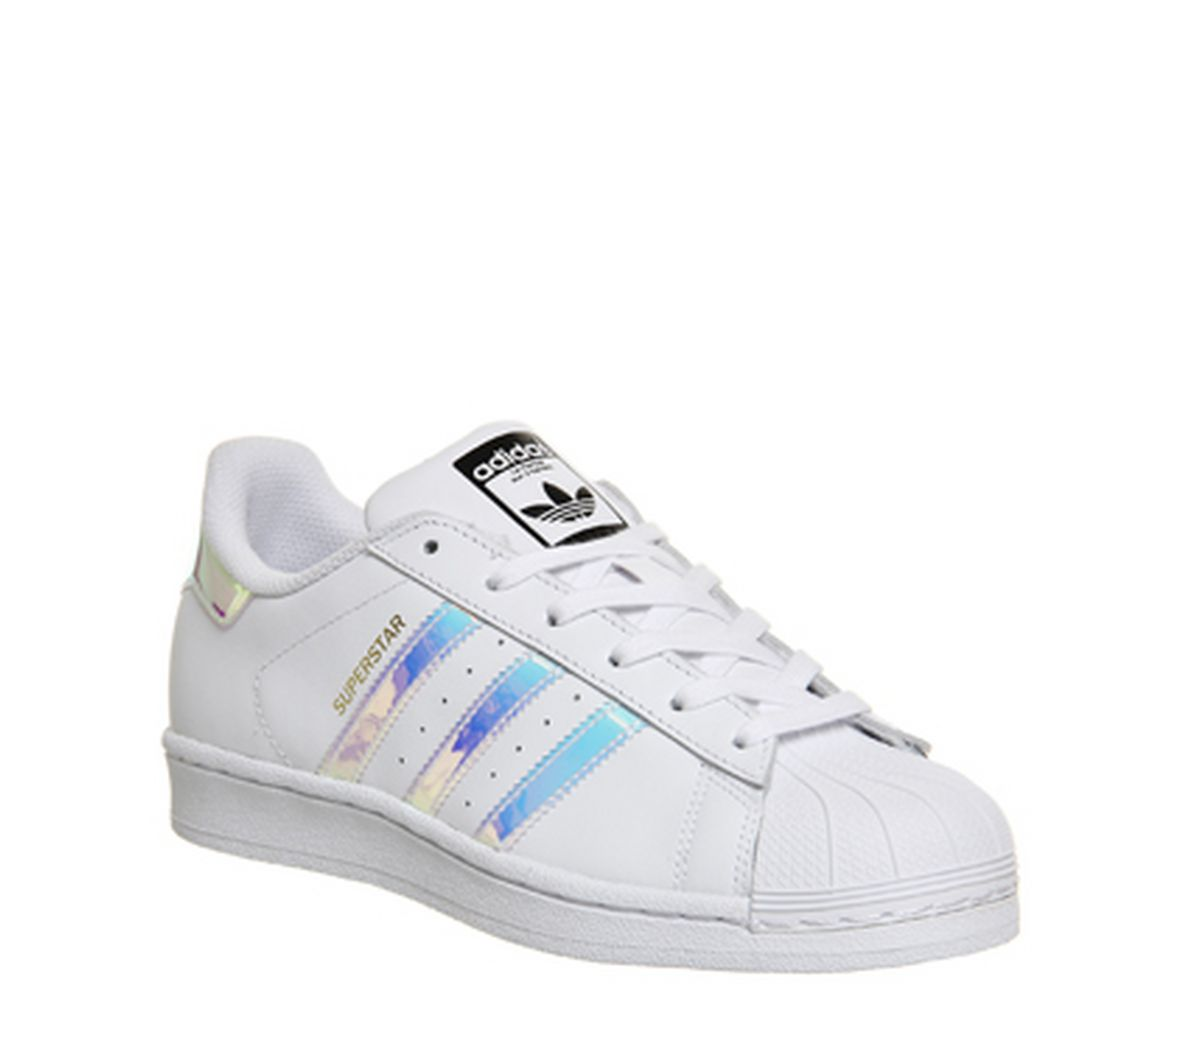 0ddeeef5054 adidas Superstar White Metallic Silver White - Hers trainers